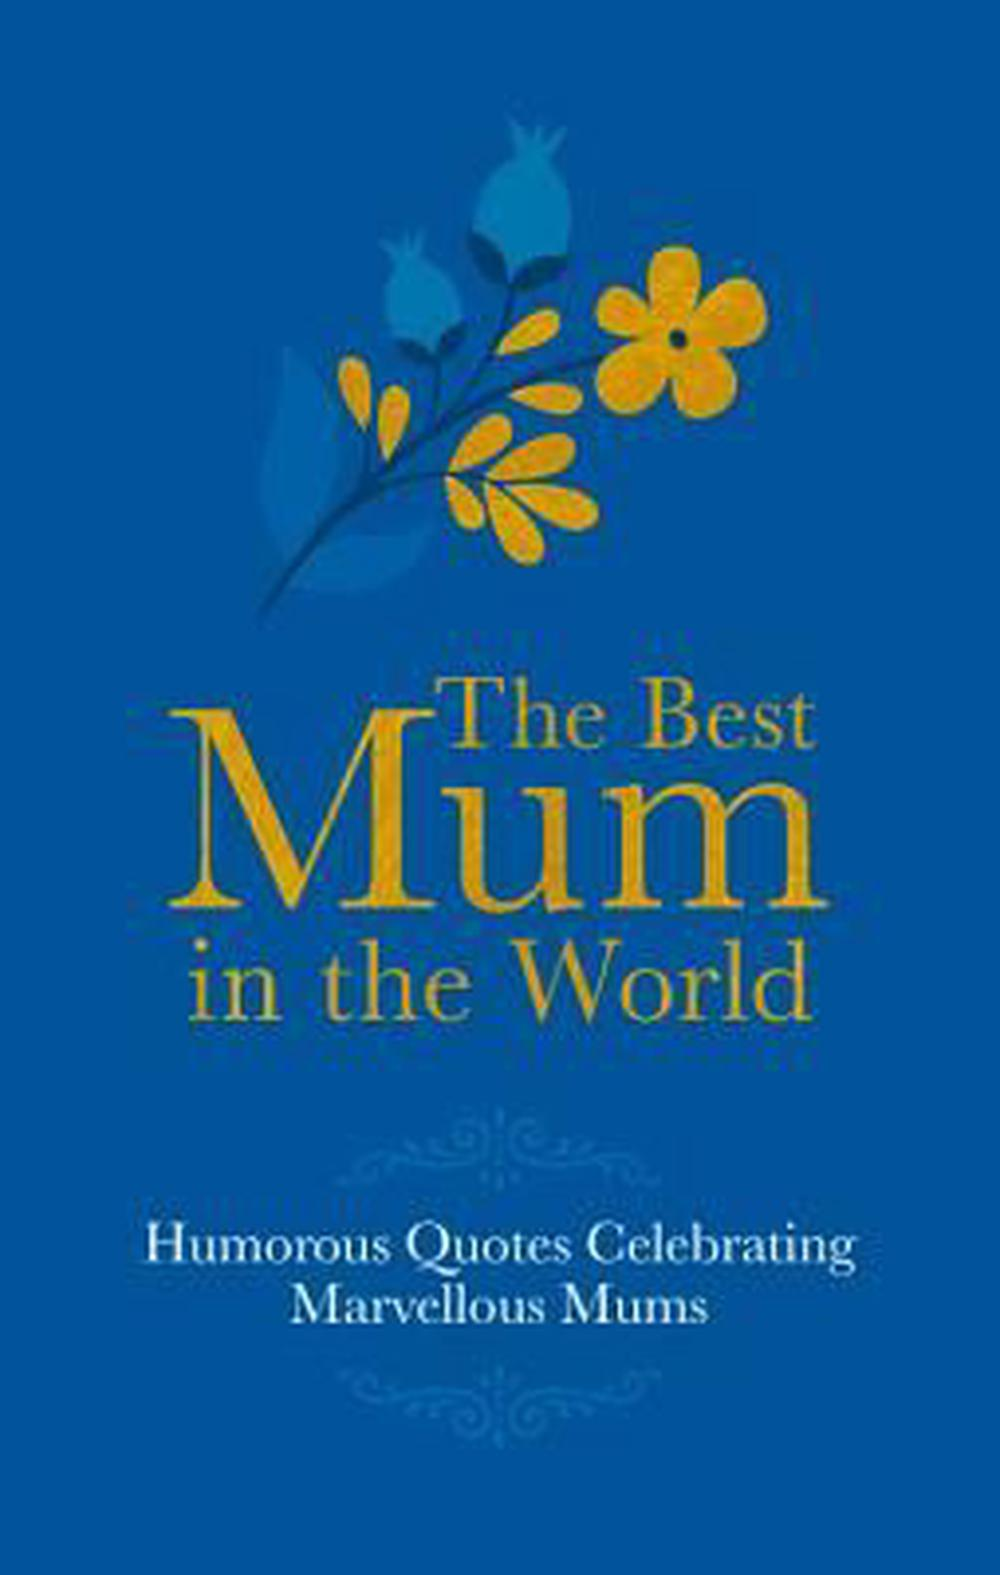 The Best Mum in the World! by Adrian Besley,Malcolm Croft, ISBN: 9781853759512